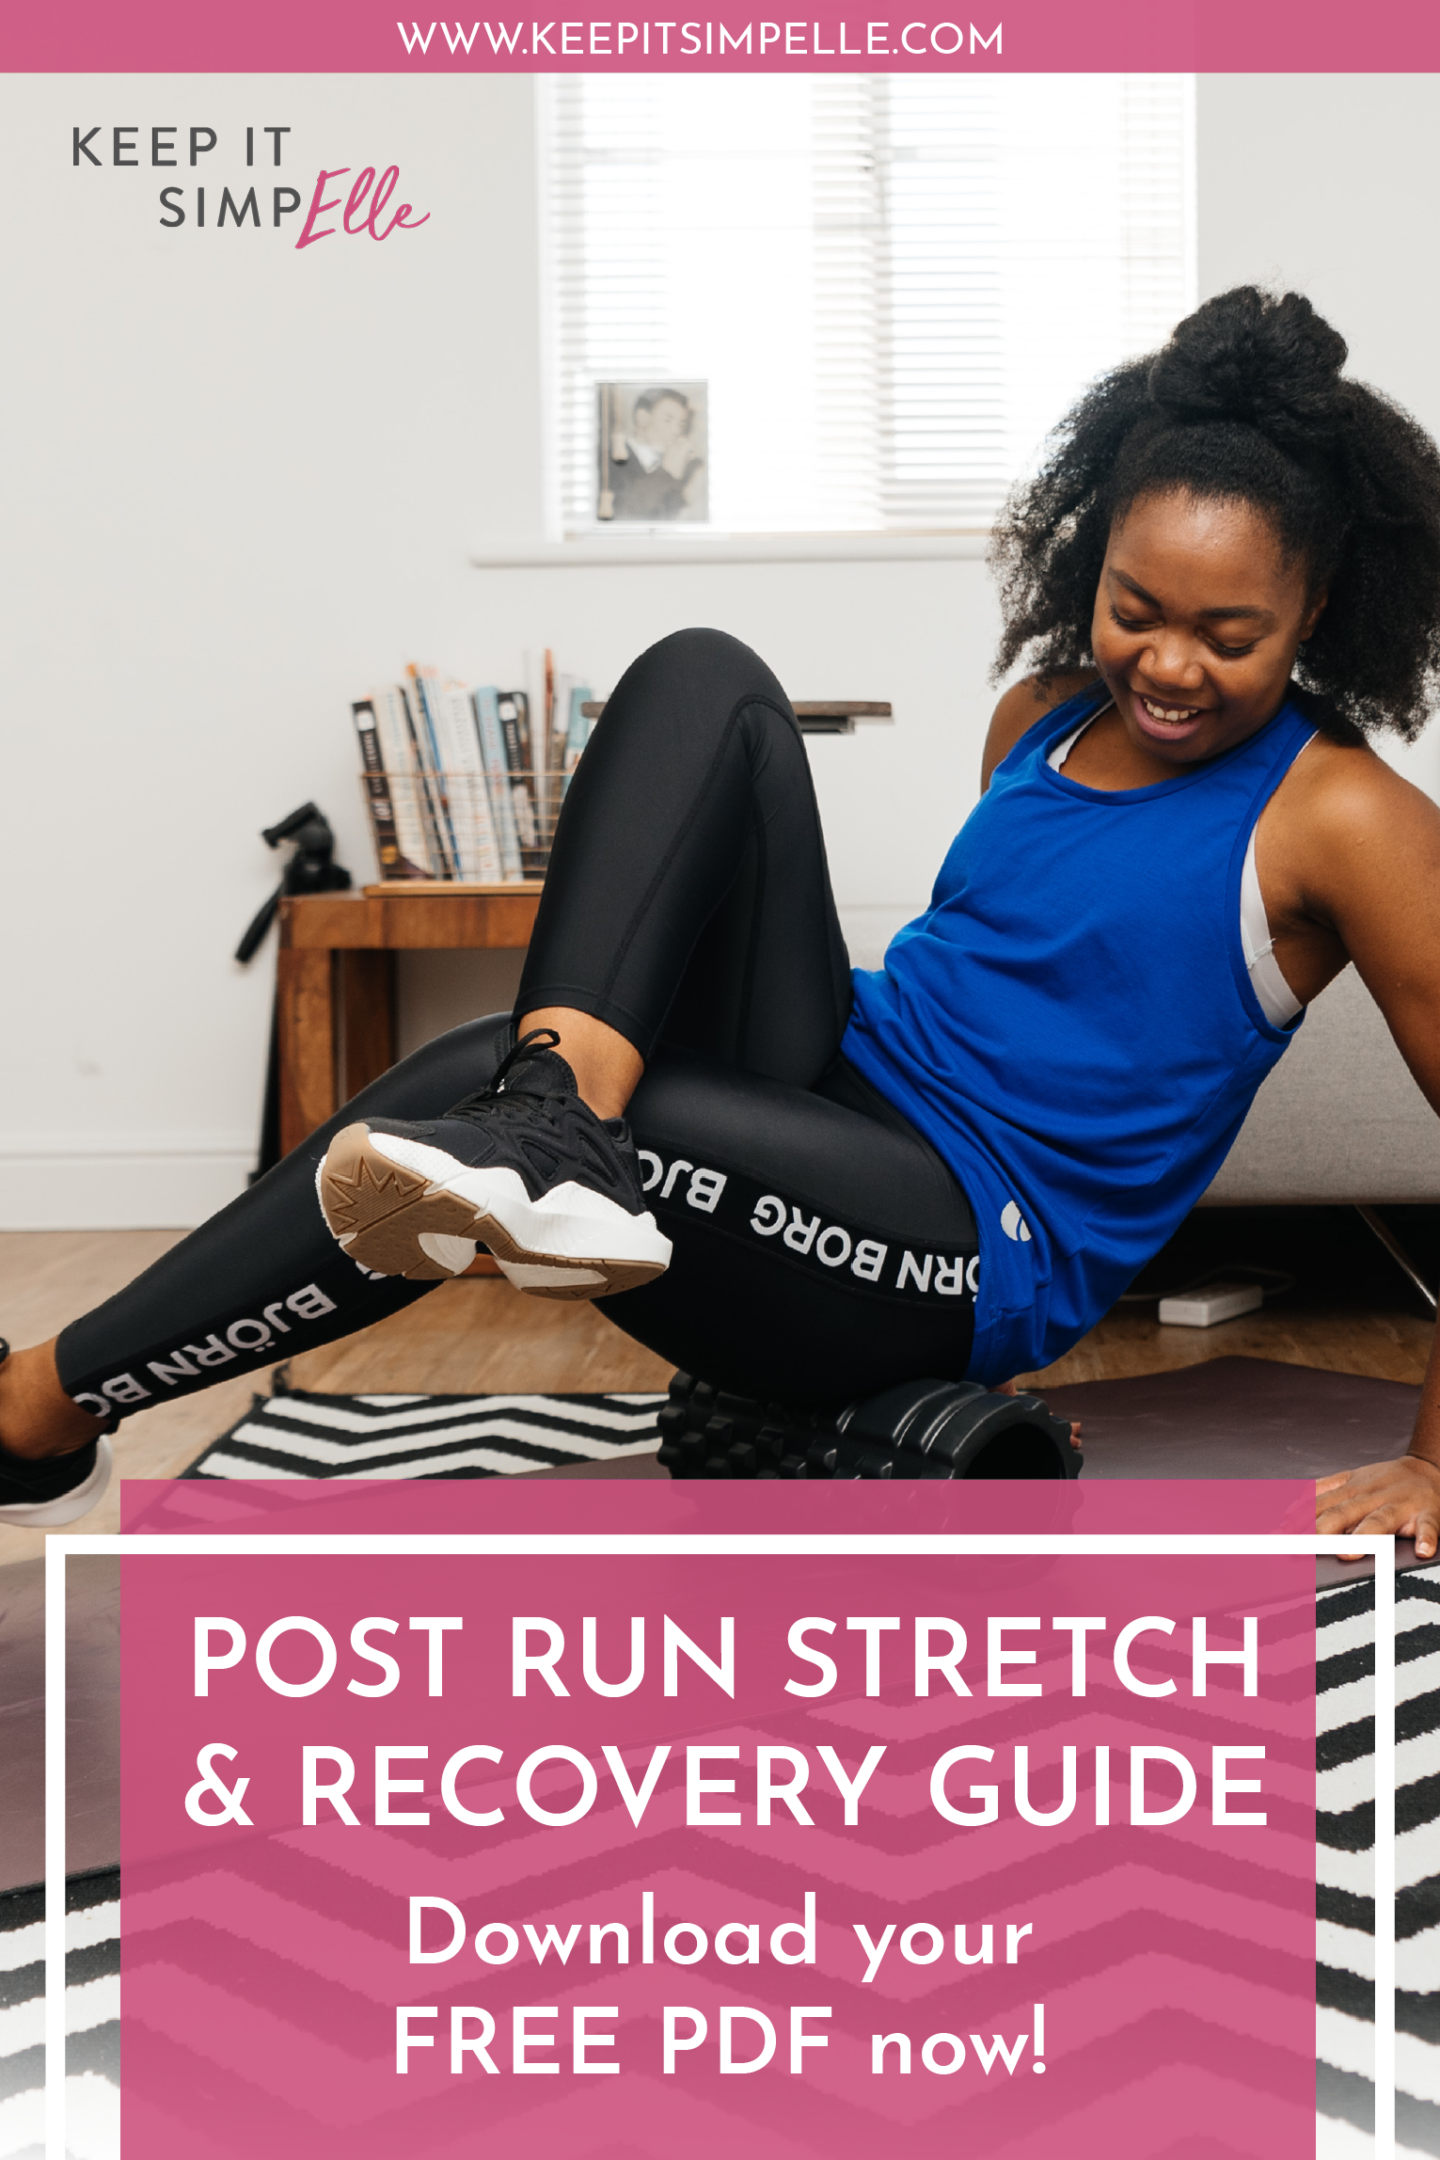 Your Post Run Stretch & Recovery Guide - Free PDF Download including 10km training plan for busy runners - run twice a week